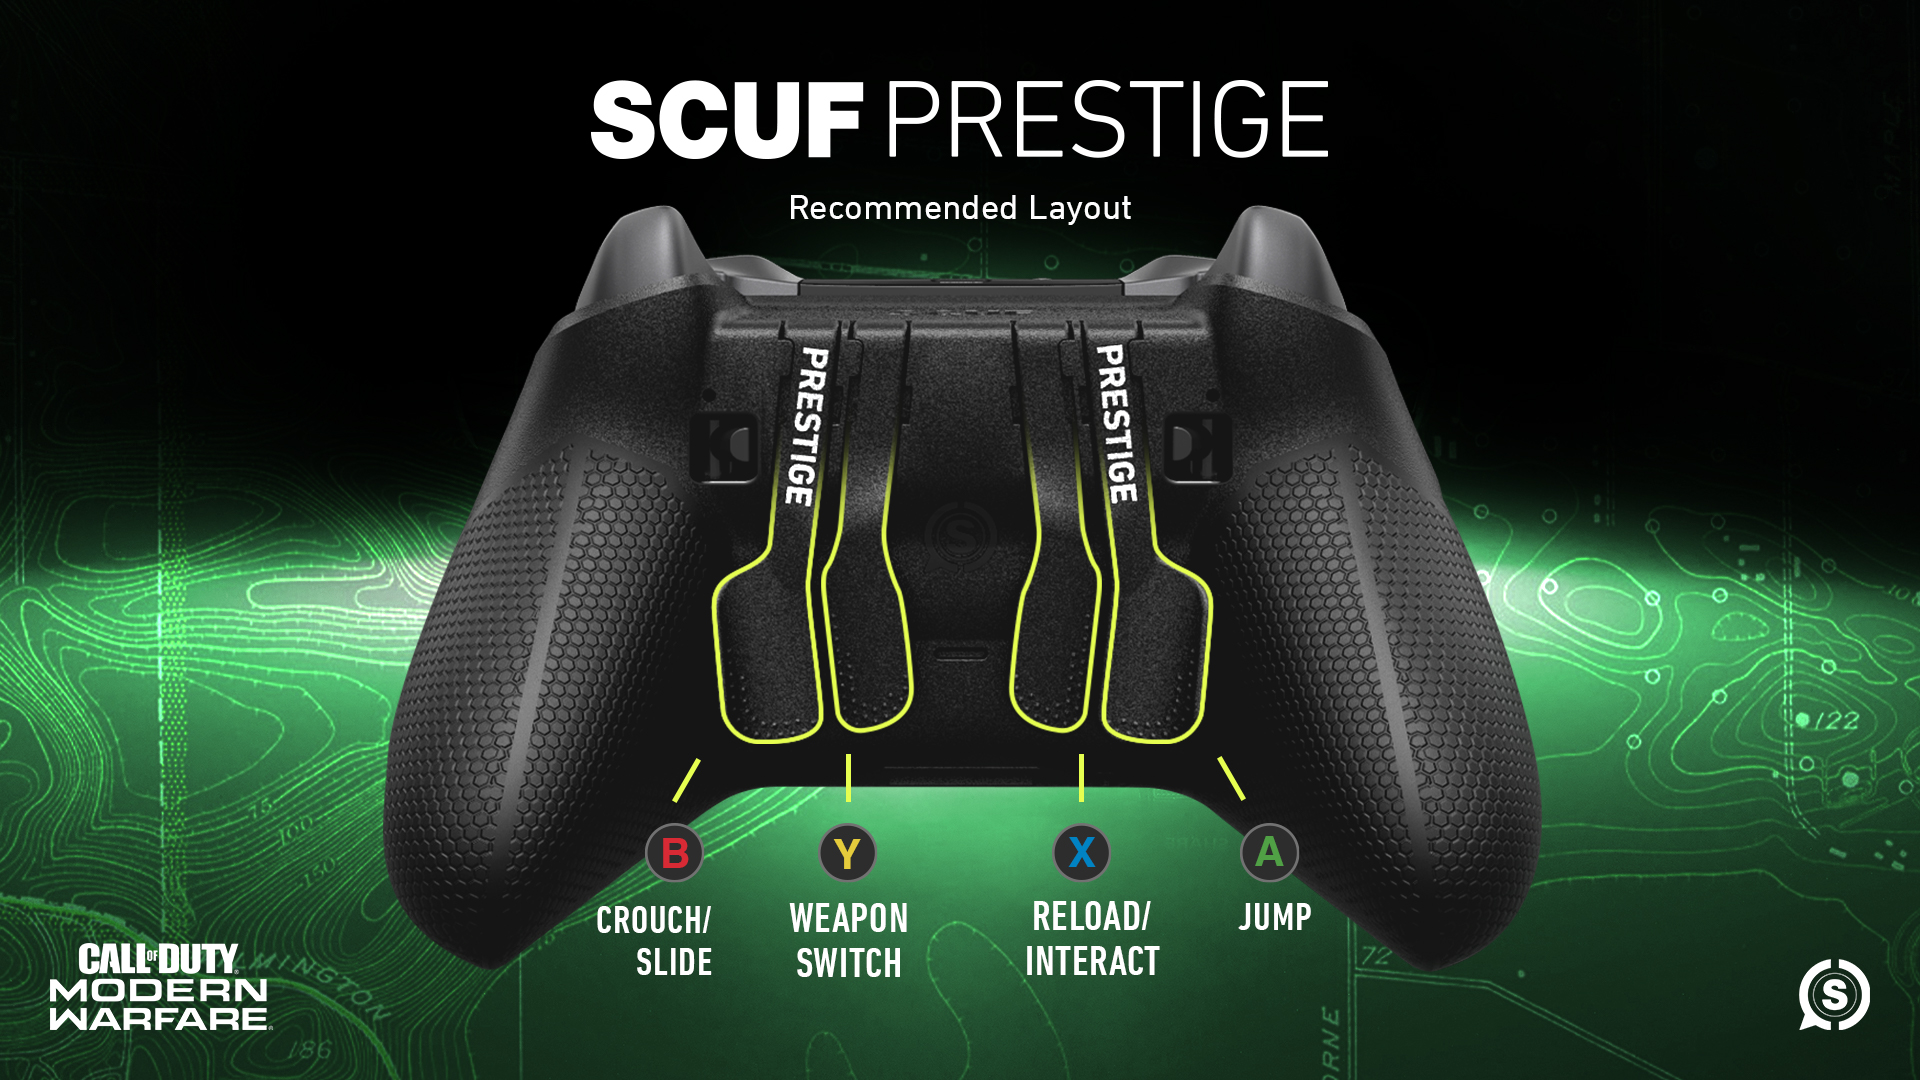 SCUF Prestige Call of Duty Modern Warfare Controller Configuration